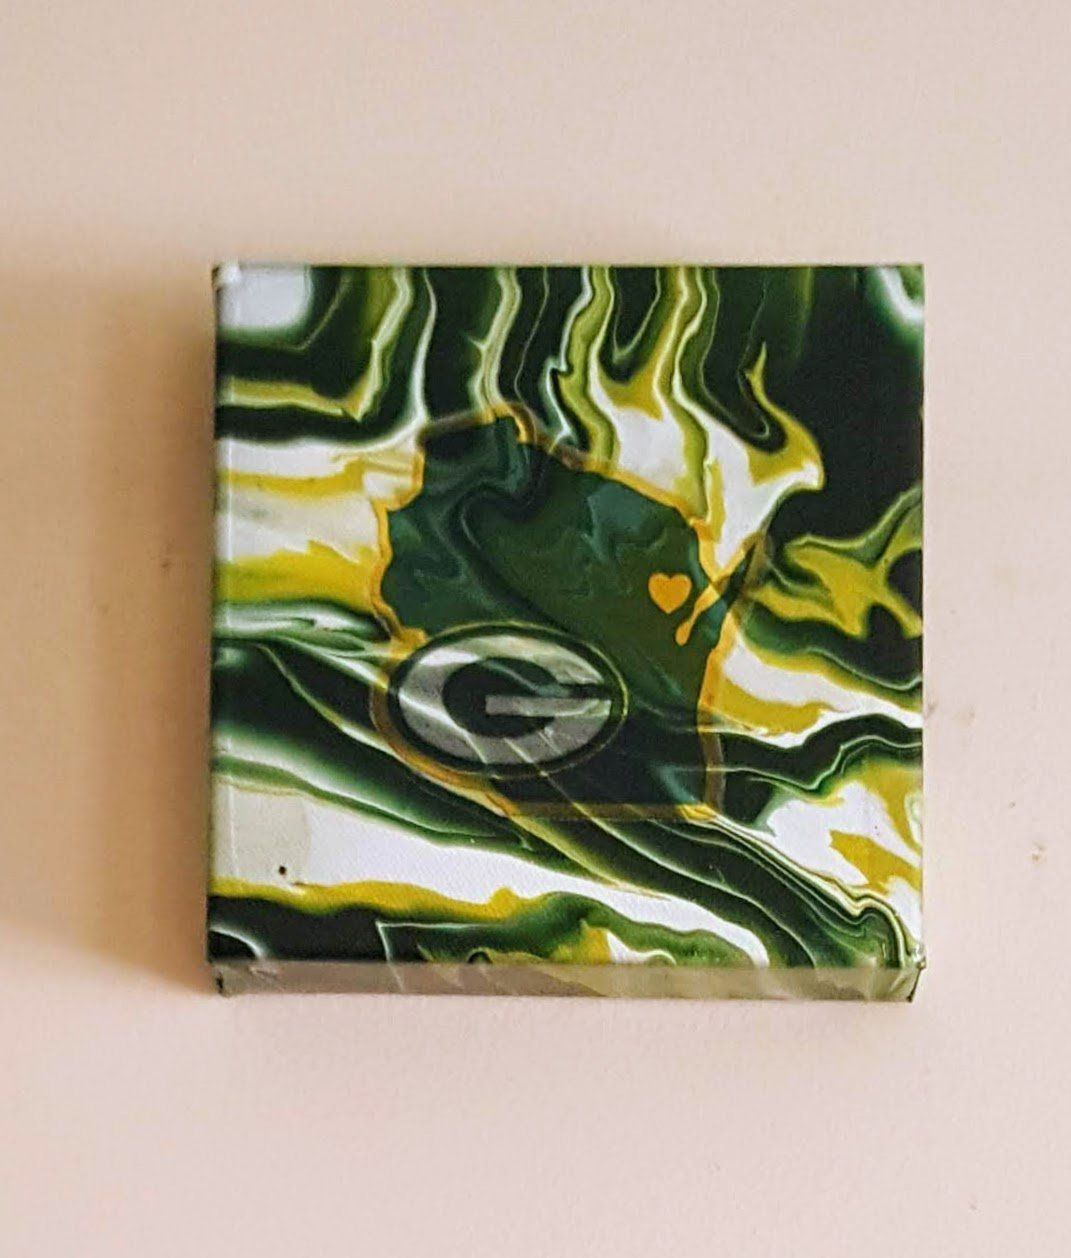 Acrylic Pour Painting On Canvas With Green Bay Packer Decal One Of A Kind Www Kroezeskreations Com Acrylic Canvas Canvas Painting Painting Canvases